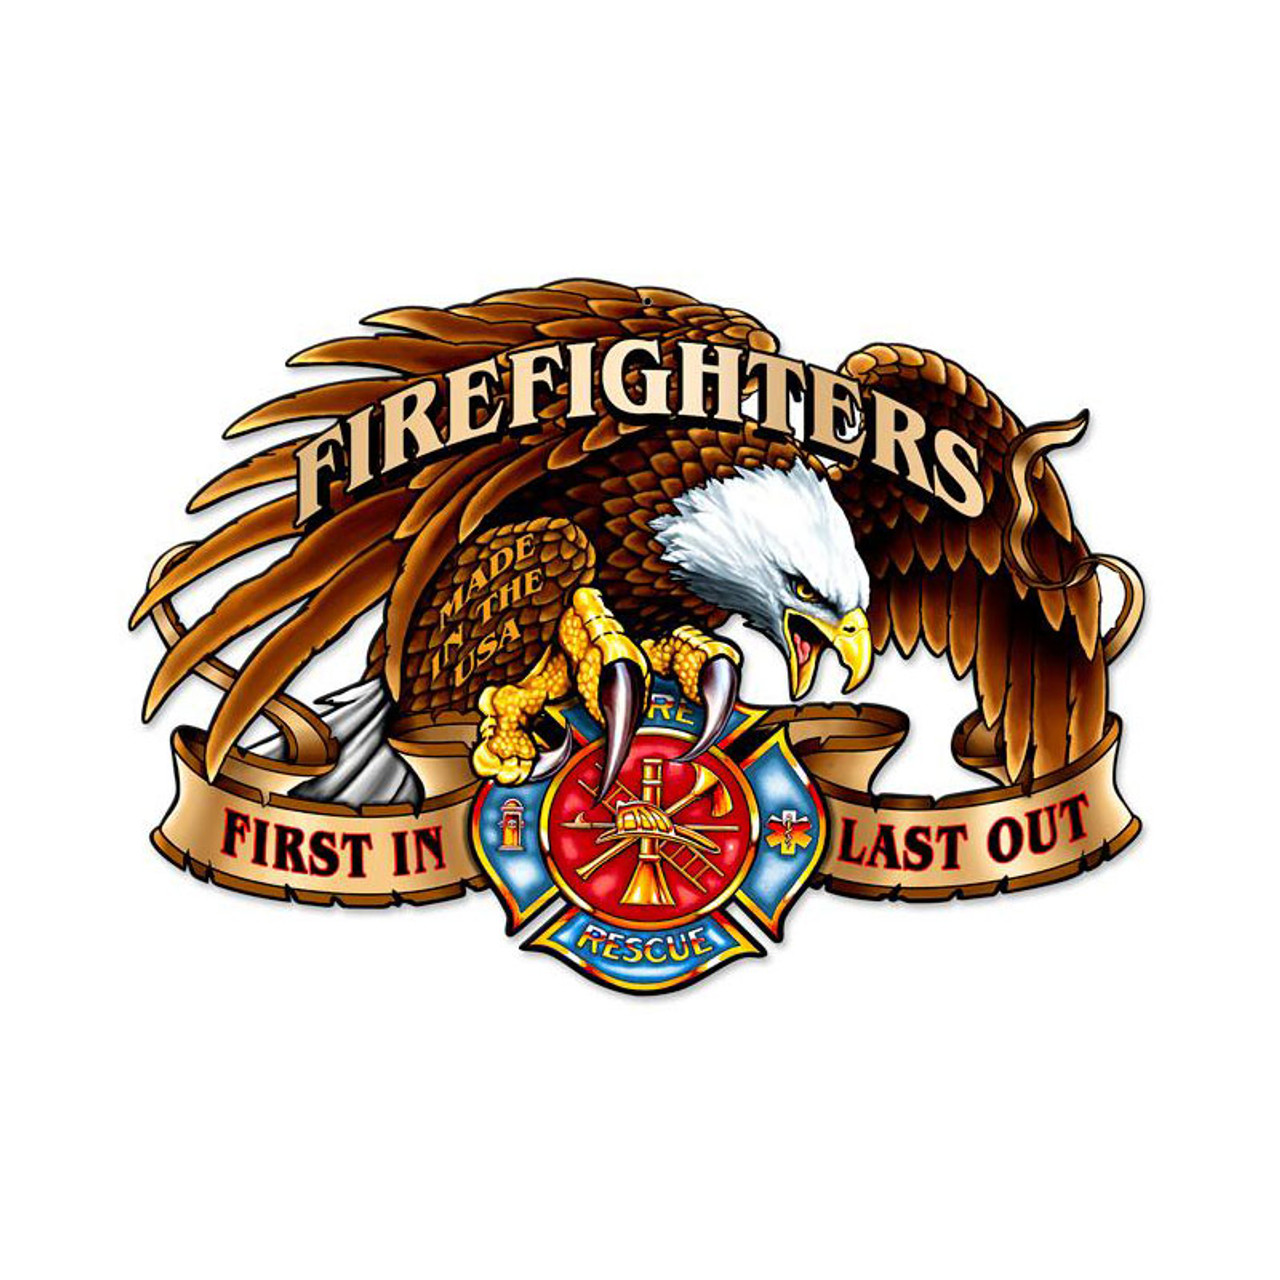 Firefighter Eagle Metal Sign 22 x 16 Inches